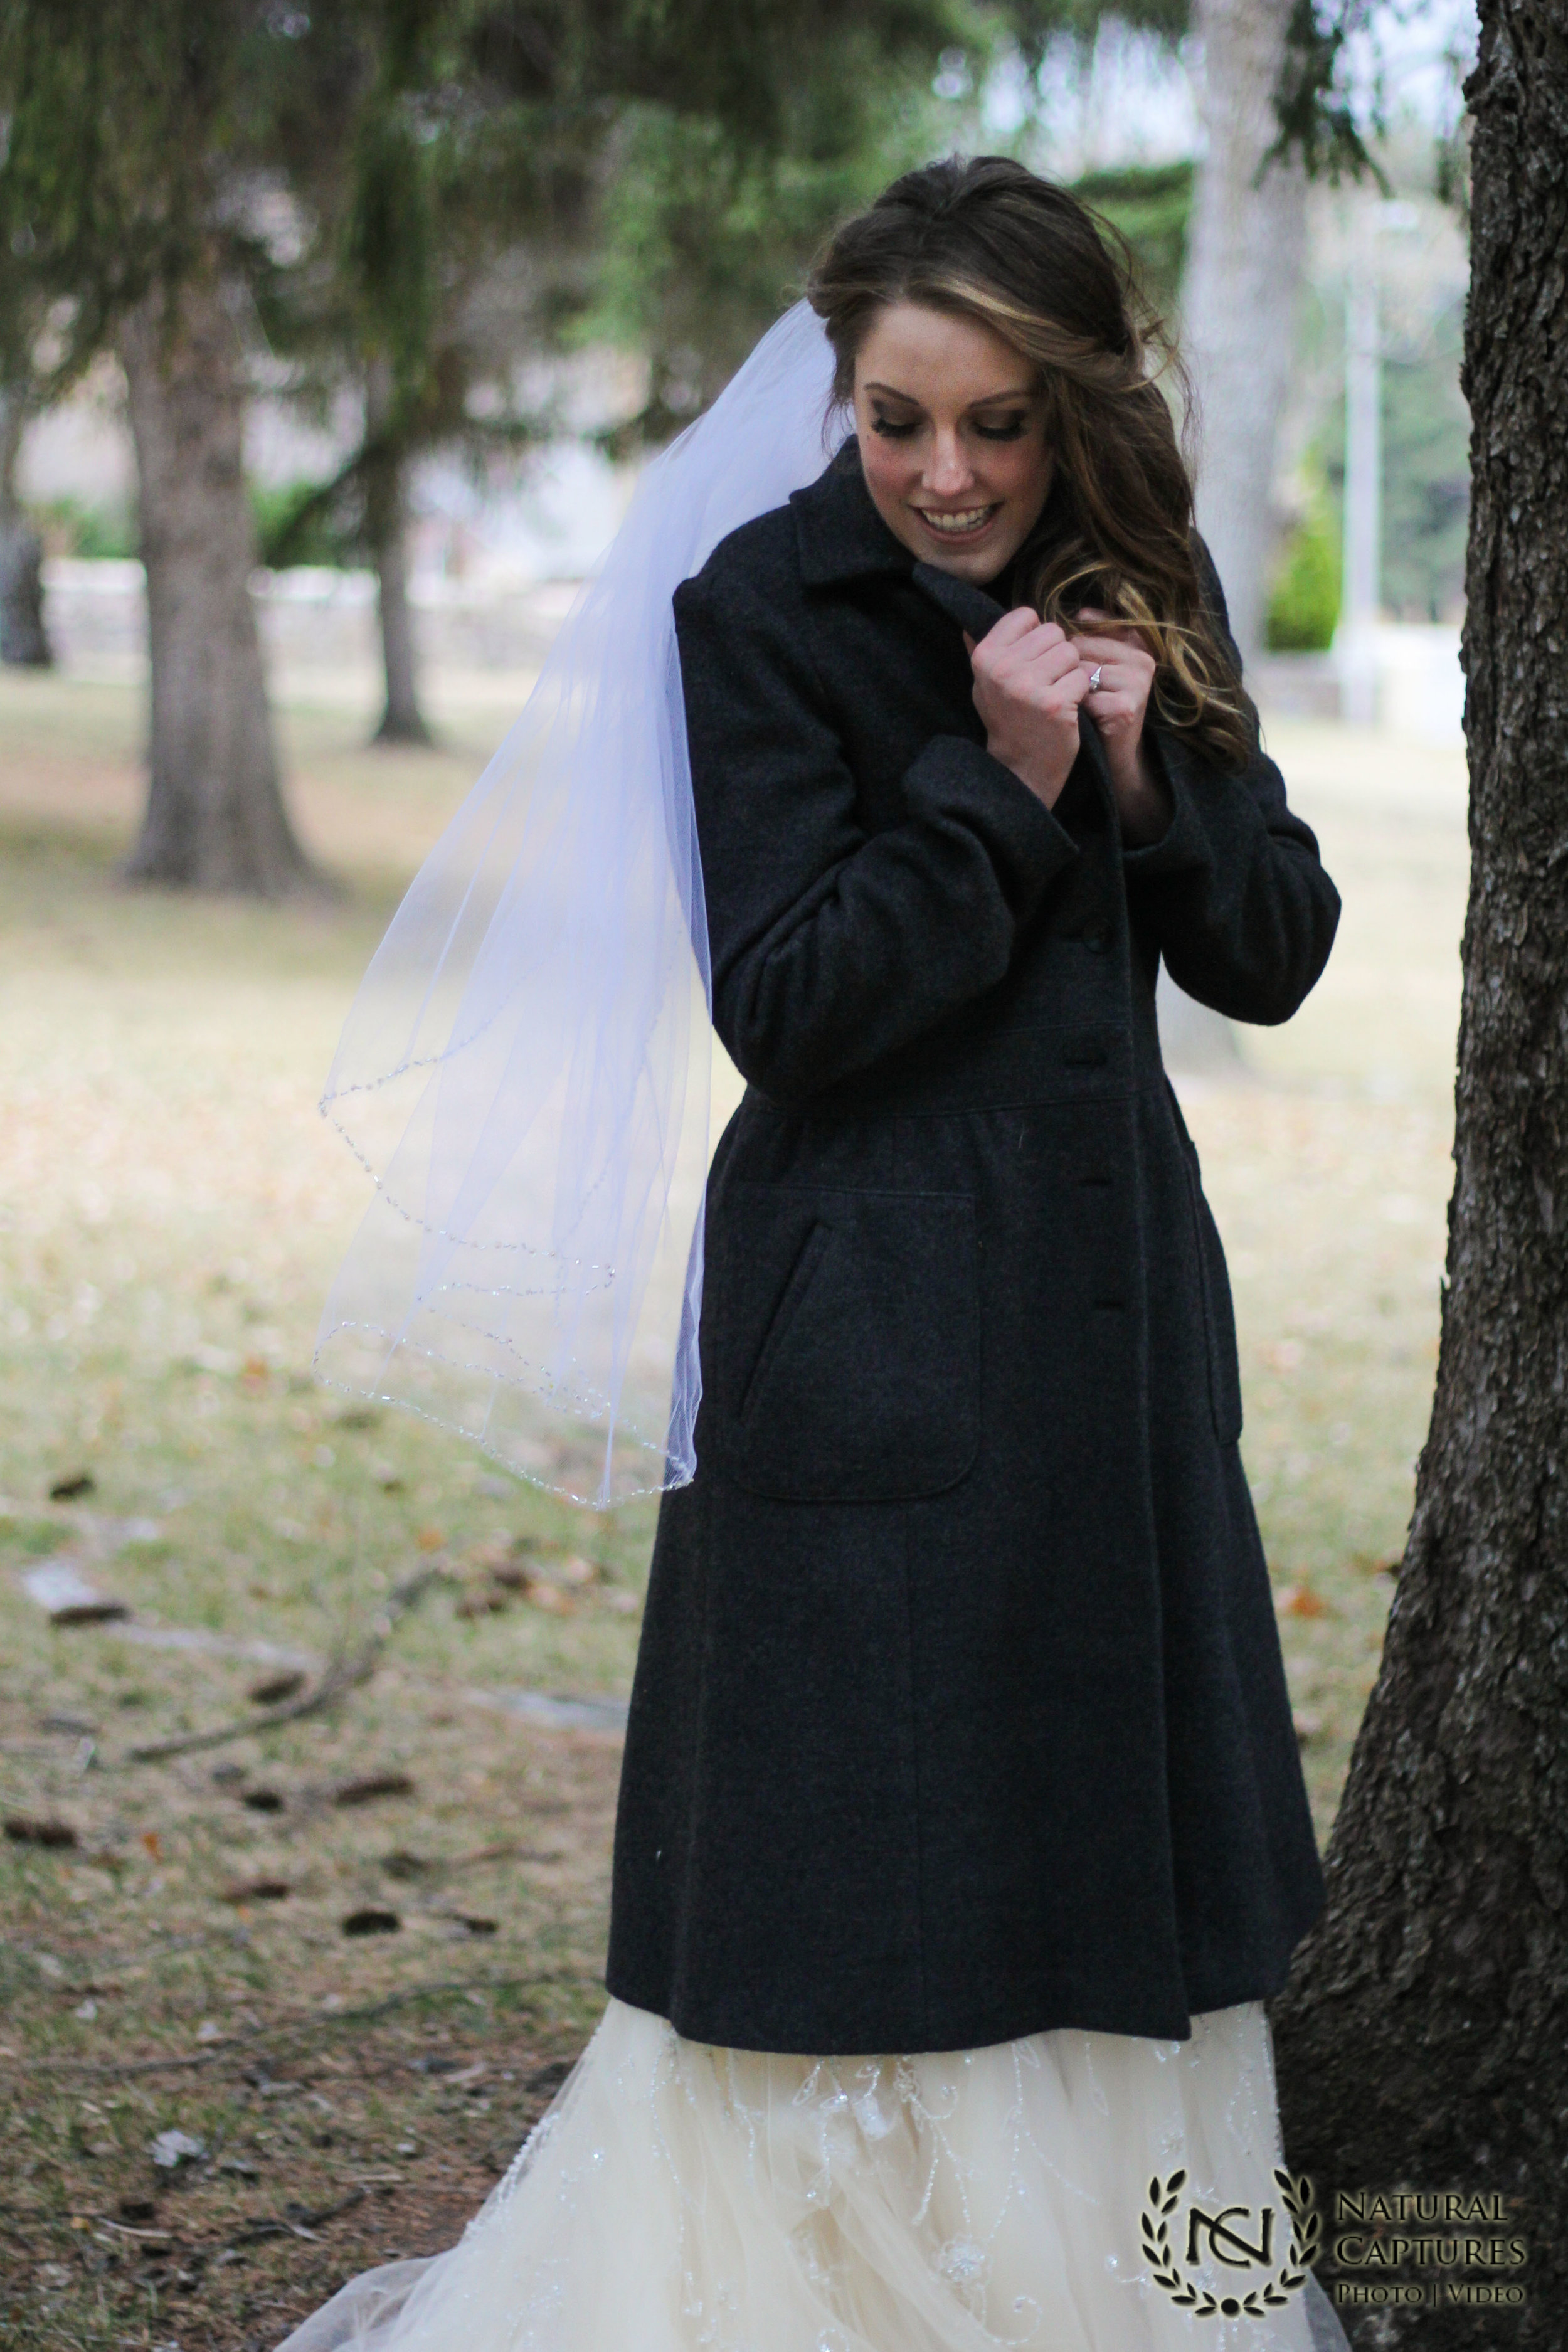 Bride in groom's coat - wedding photo